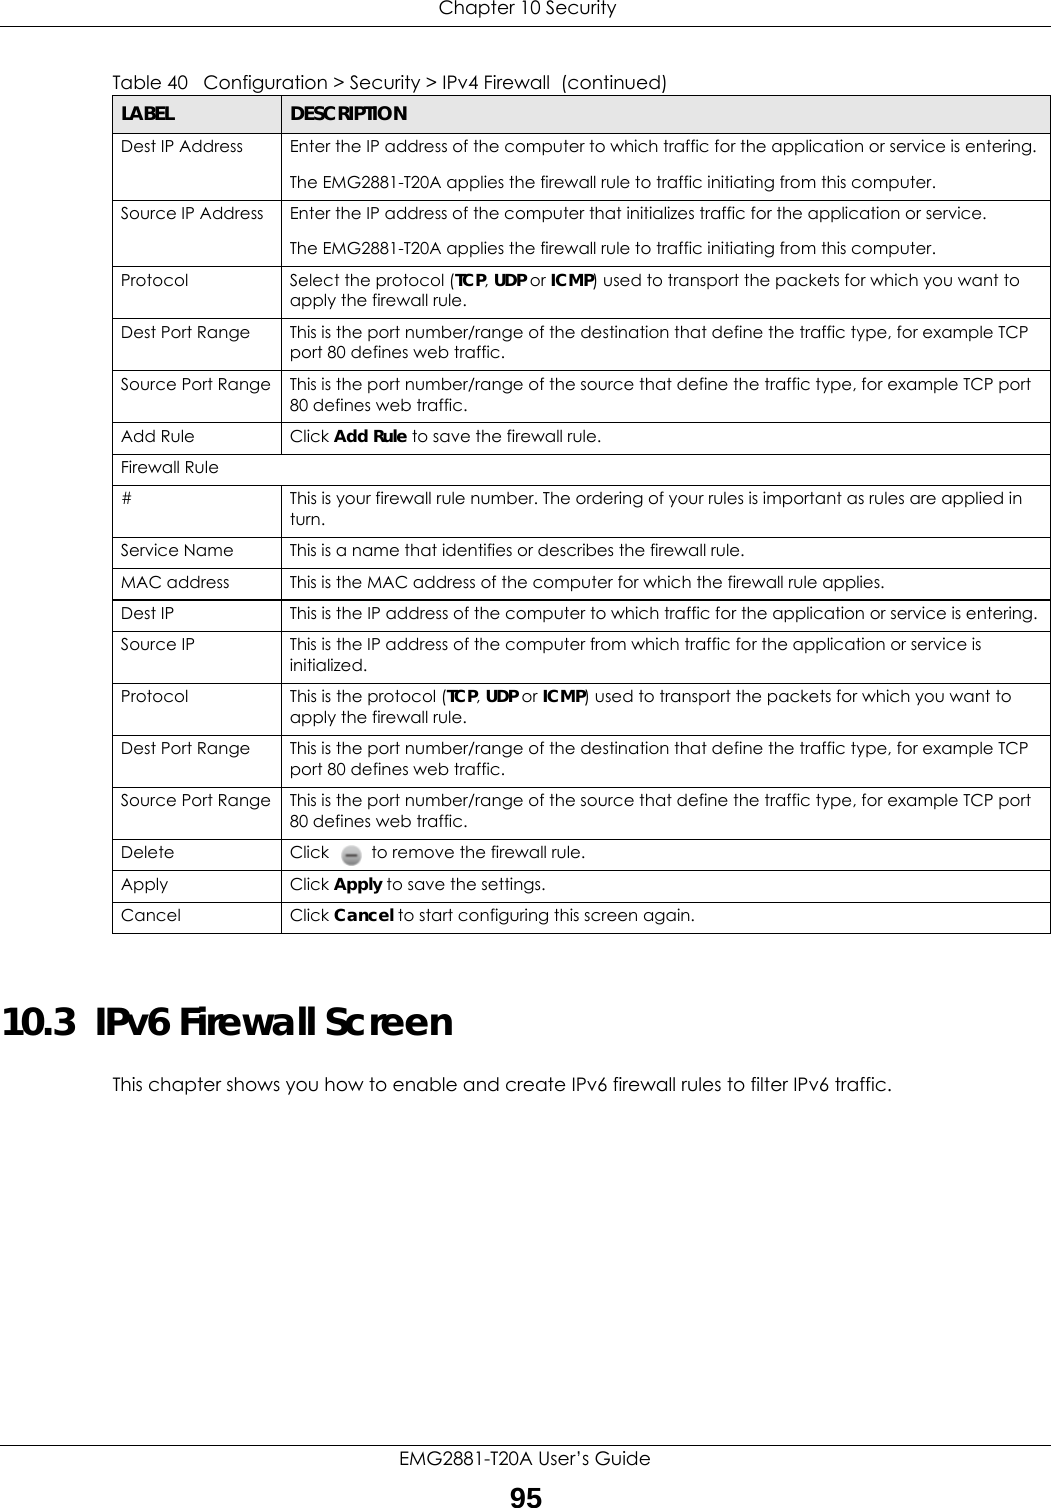 Chapter 10 SecurityEMG2881-T20A User's Guide9510.3  IPv6 Firewall Screen This chapter shows you how to enable and create IPv6 firewall rules to filter IPv6 traffic.Dest IP Address Enter the IP address of the computer to which traffic for the application or service is entering. The EMG2881-T20A applies the firewall rule to traffic initiating from this computer. Source IP Address Enter the IP address of the computer that initializes traffic for the application or service.The EMG2881-T20A applies the firewall rule to traffic initiating from this computer.Protocol  Select the protocol (TCP, UDP or ICMP) used to transport the packets for which you want to apply the firewall rule.Dest Port Range This is the port number/range of the destination that define the traffic type, for example TCP port 80 defines web traffic.Source Port Range This is the port number/range of the source that define the traffic type, for example TCP port 80 defines web traffic.Add Rule Click Add Rule to save the firewall rule. Firewall Rule# This is your firewall rule number. The ordering of your rules is important as rules are applied in turn. Service Name This is a name that identifies or describes the firewall rule.MAC address This is the MAC address of the computer for which the firewall rule applies.Dest IP This is the IP address of the computer to which traffic for the application or service is entering. Source IP This is the IP address of the computer from which traffic for the application or service is initialized. Protocol This is the protocol (TCP, UDP or ICMP) used to transport the packets for which you want to apply the firewall rule. Dest Port Range This is the port number/range of the destination that define the traffic type, for example TCP port 80 defines web traffic.Source Port Range This is the port number/range of the source that define the traffic type, for example TCP port 80 defines web traffic.Delete Click   to remove the firewall rule.Apply Click Apply to save the settings. C